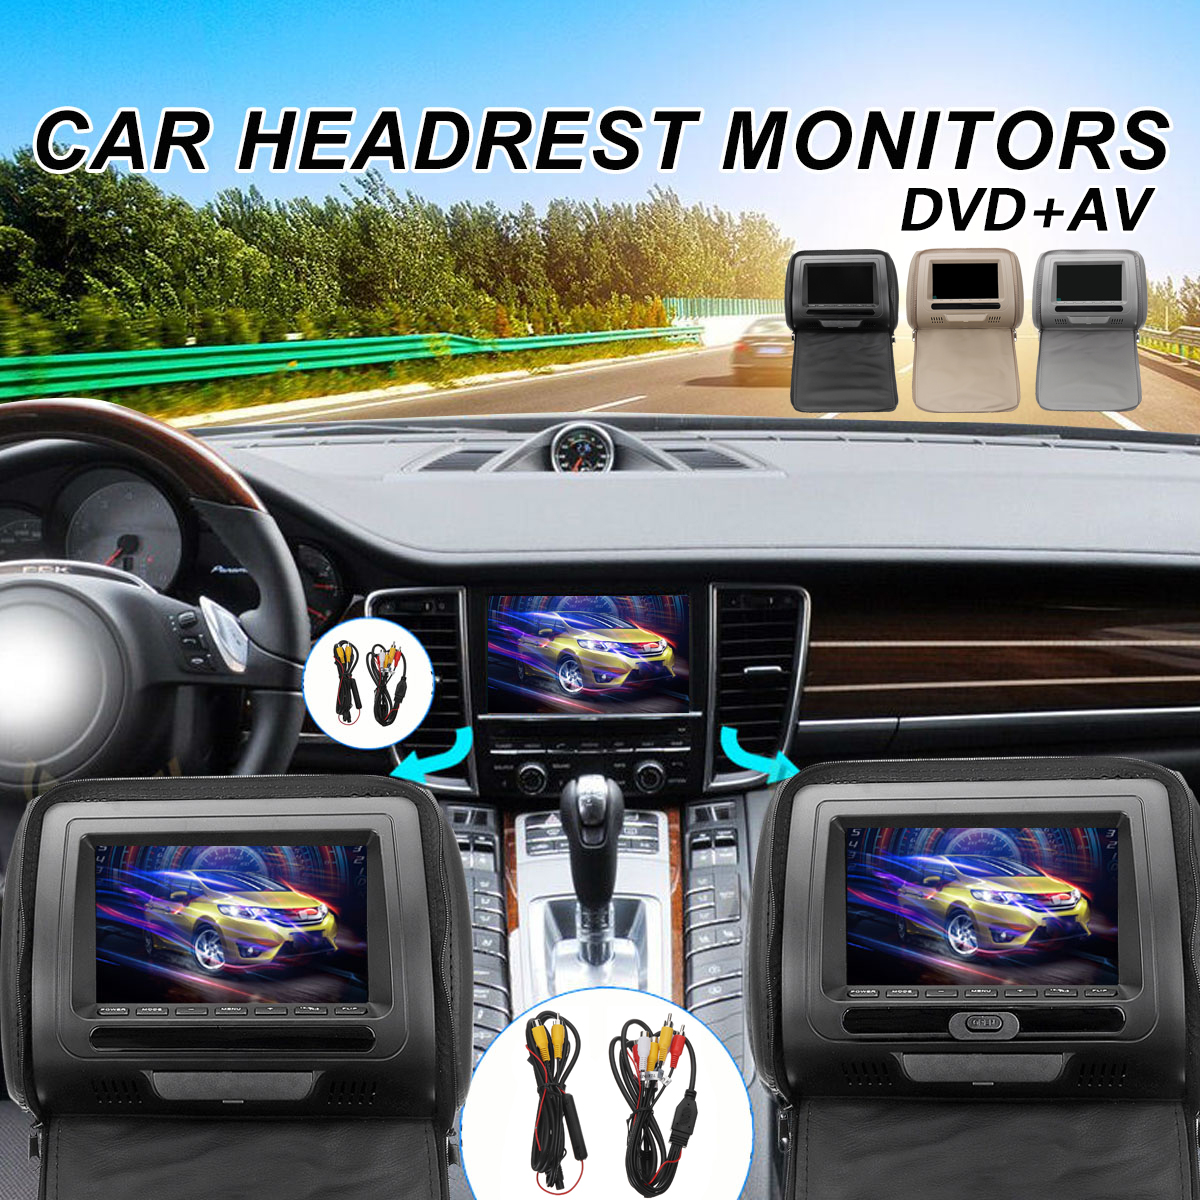 2 pz/set 7 pollice Auto DVD Monitor Poggiatesta Schermo Digitale A LED Cuscino MP5 AV Player Monitor di Controllo A Distanza Senza Fili